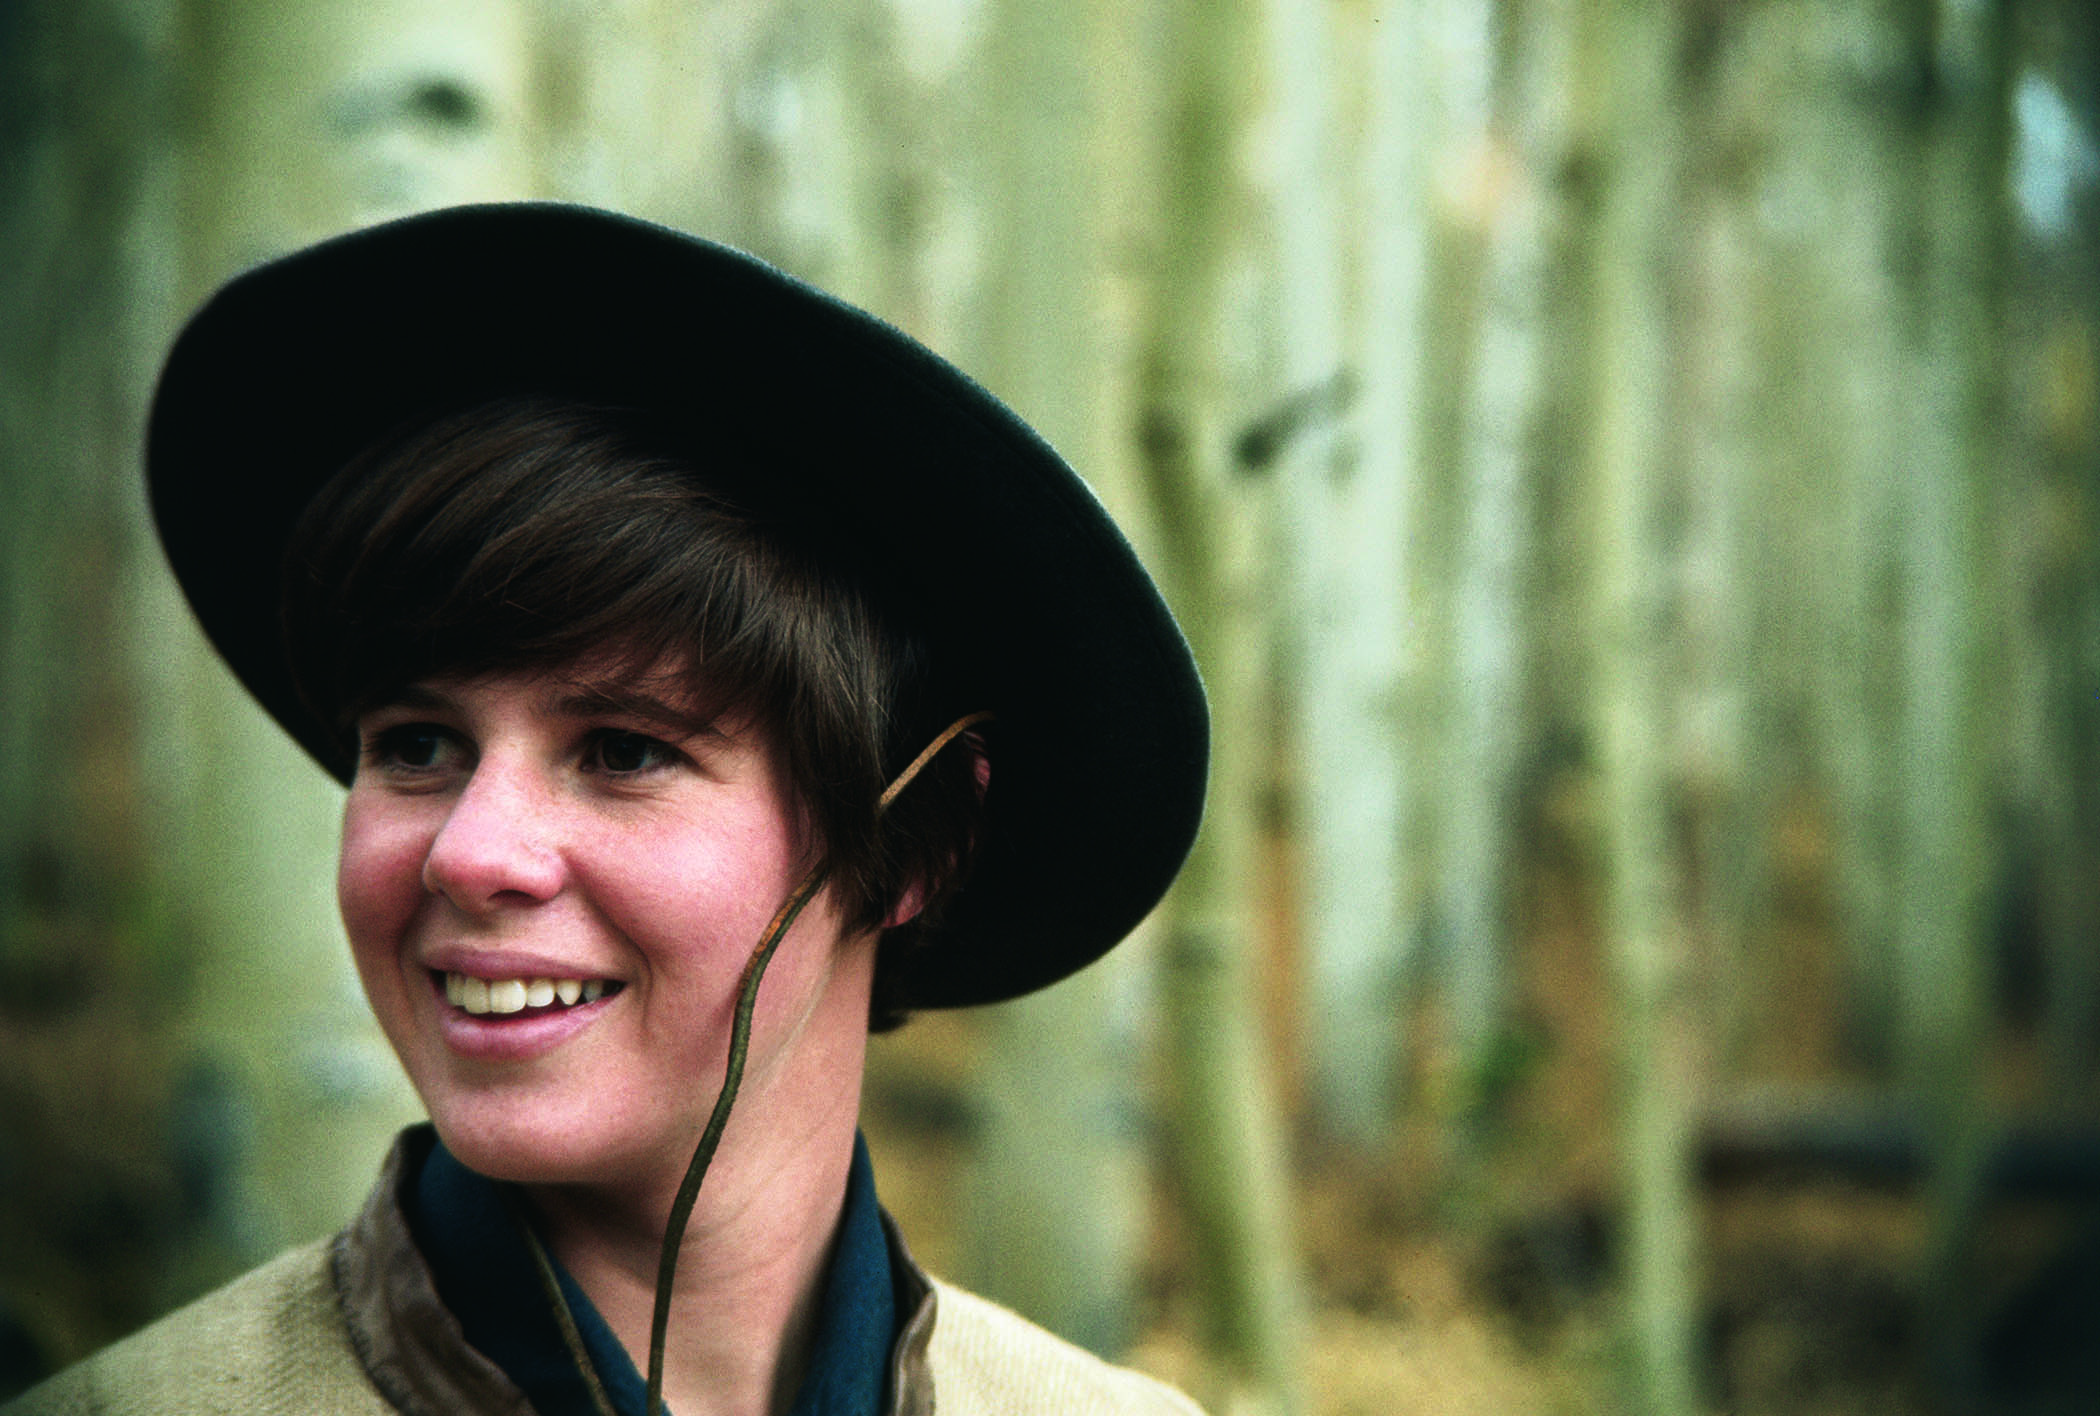 Kim Darby. ©2019 Paramount Pictures. All Rights Reserved.